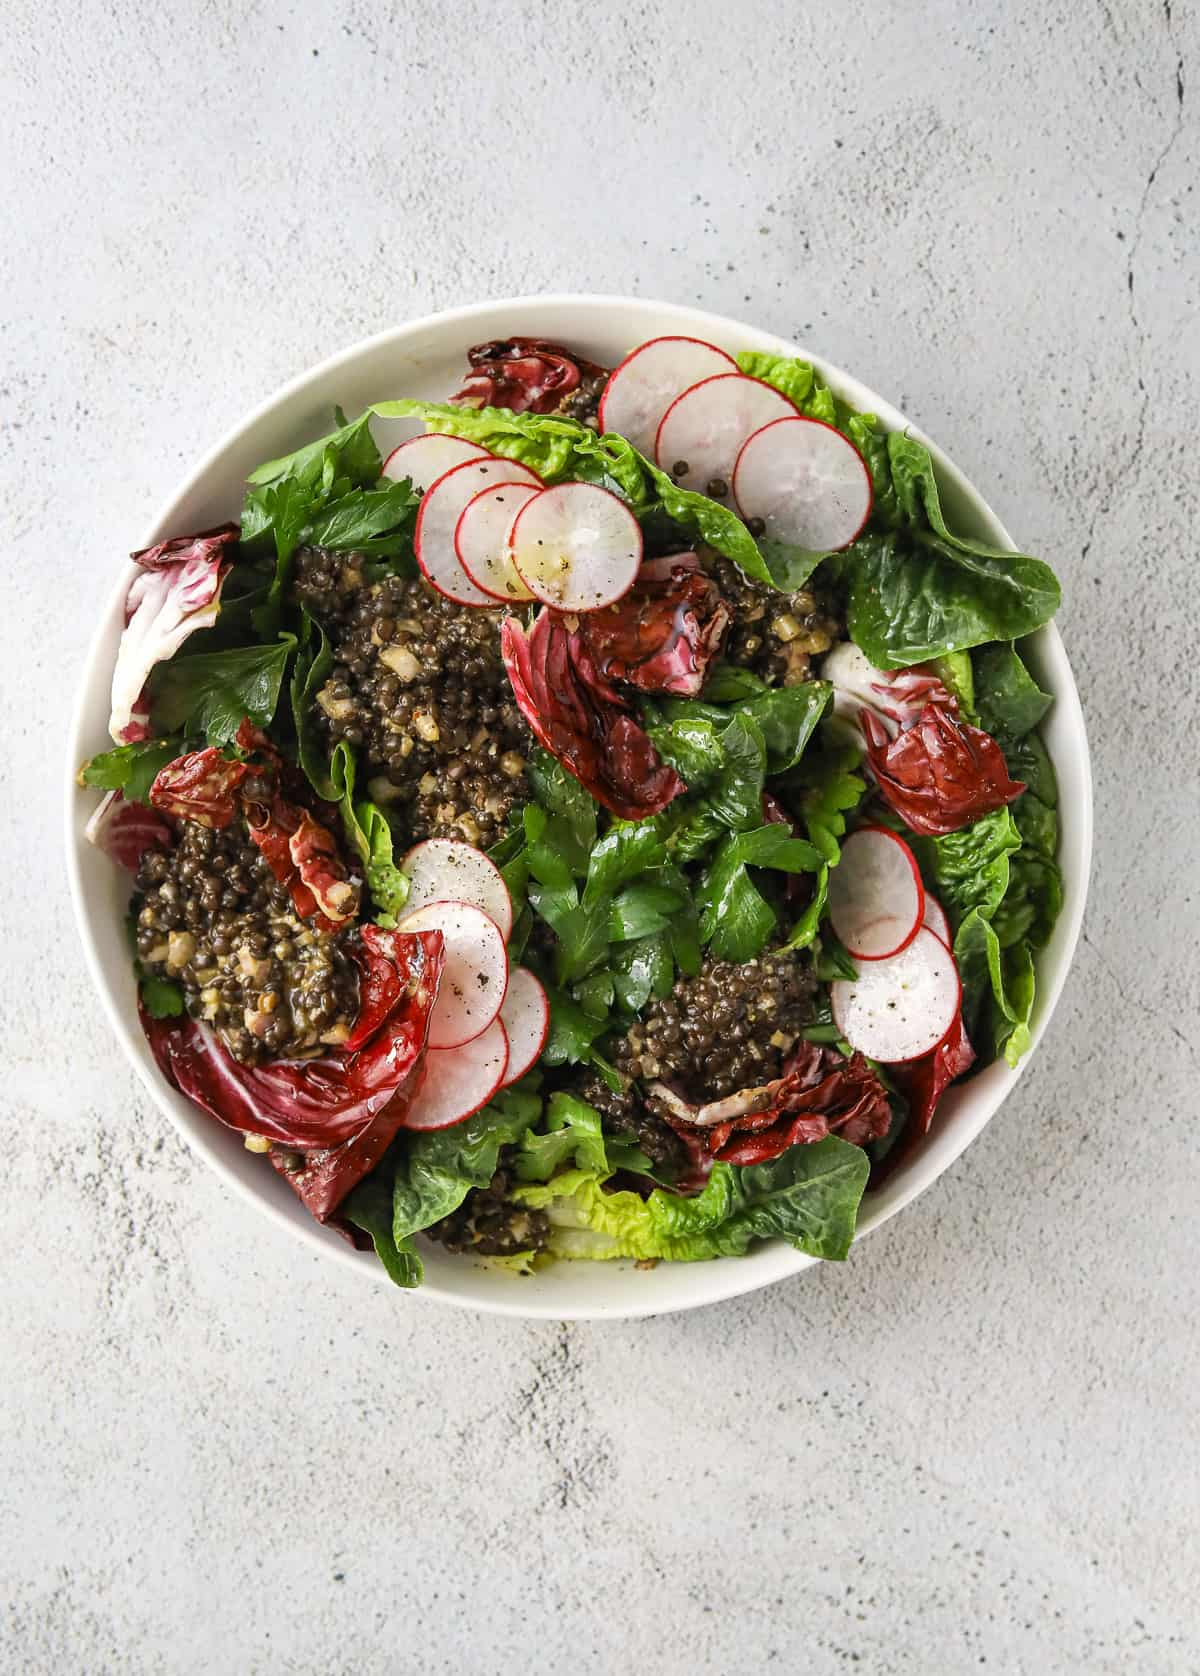 a white bowl filled with little gem salad with radicchio, sliced of radish, black beluga lentils and parsley leaves